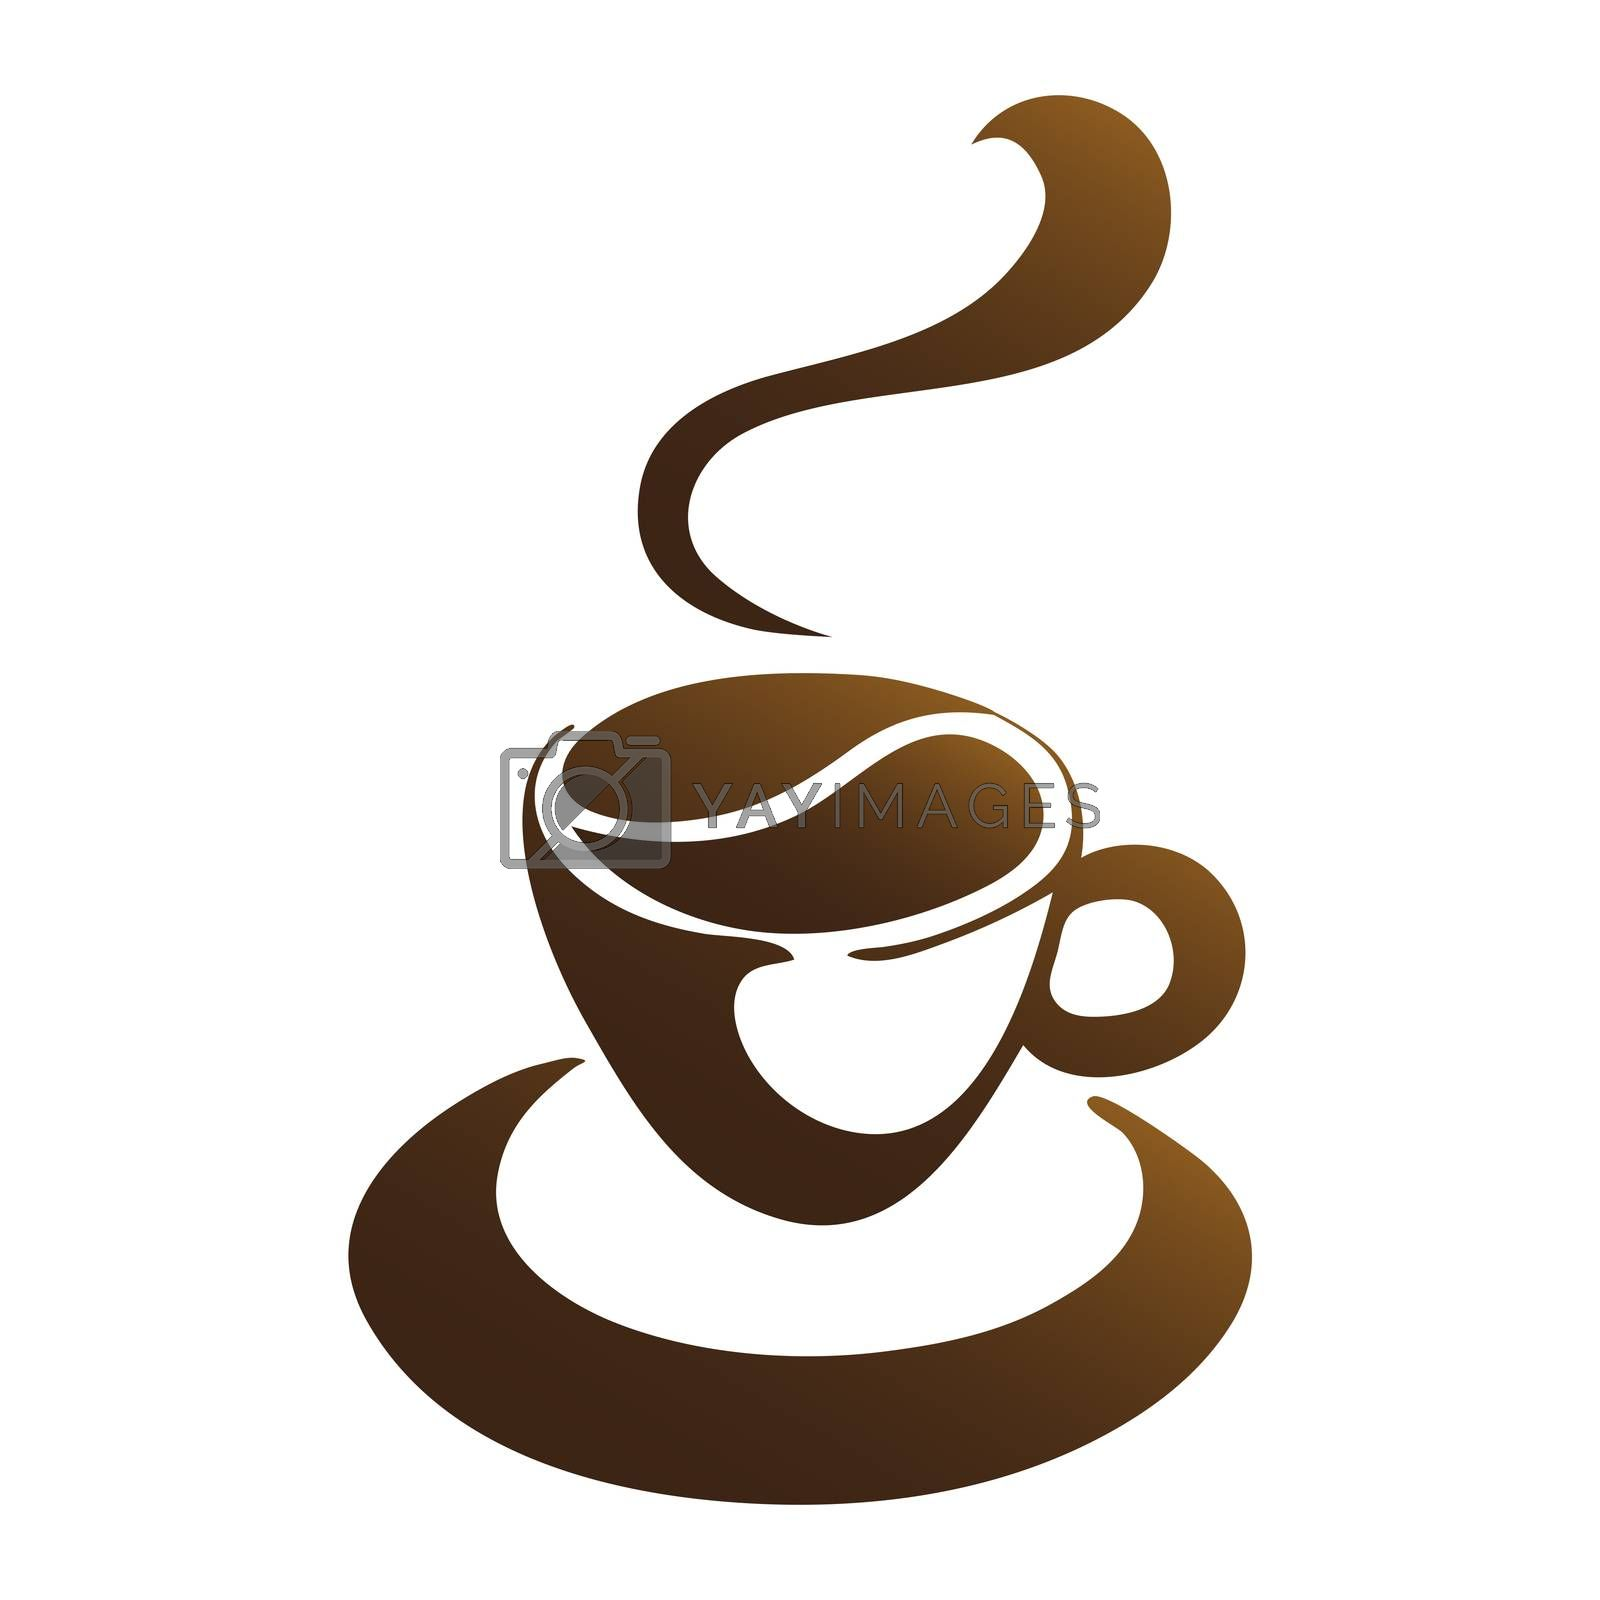 Royalty free image of hot coffee cup vector by mizar_21984